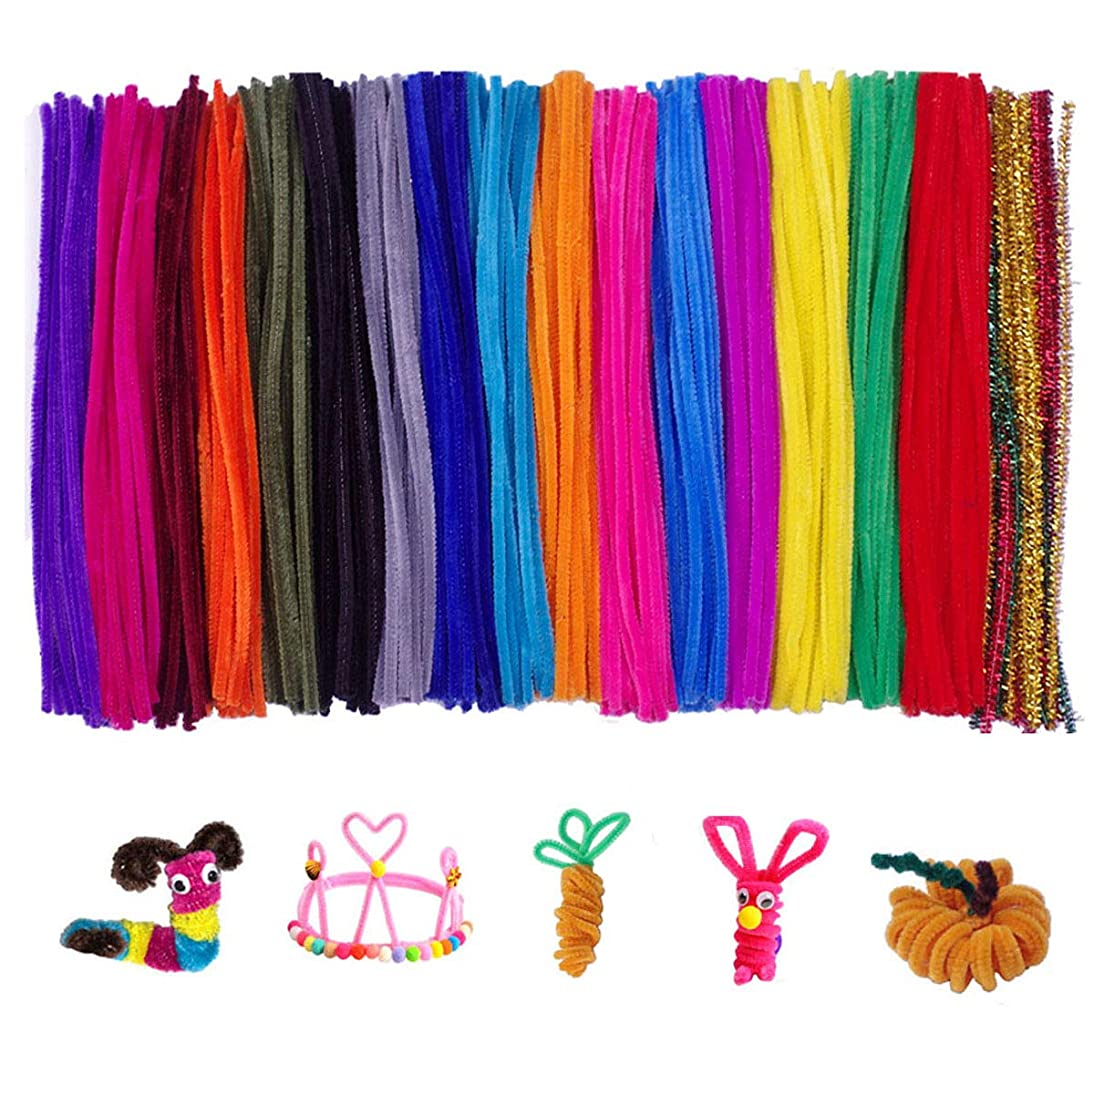 300 Pcs Random Colors Pipe Cleaners Chenille Stems for DIY Art Supplies (6 mm x 12 inch)